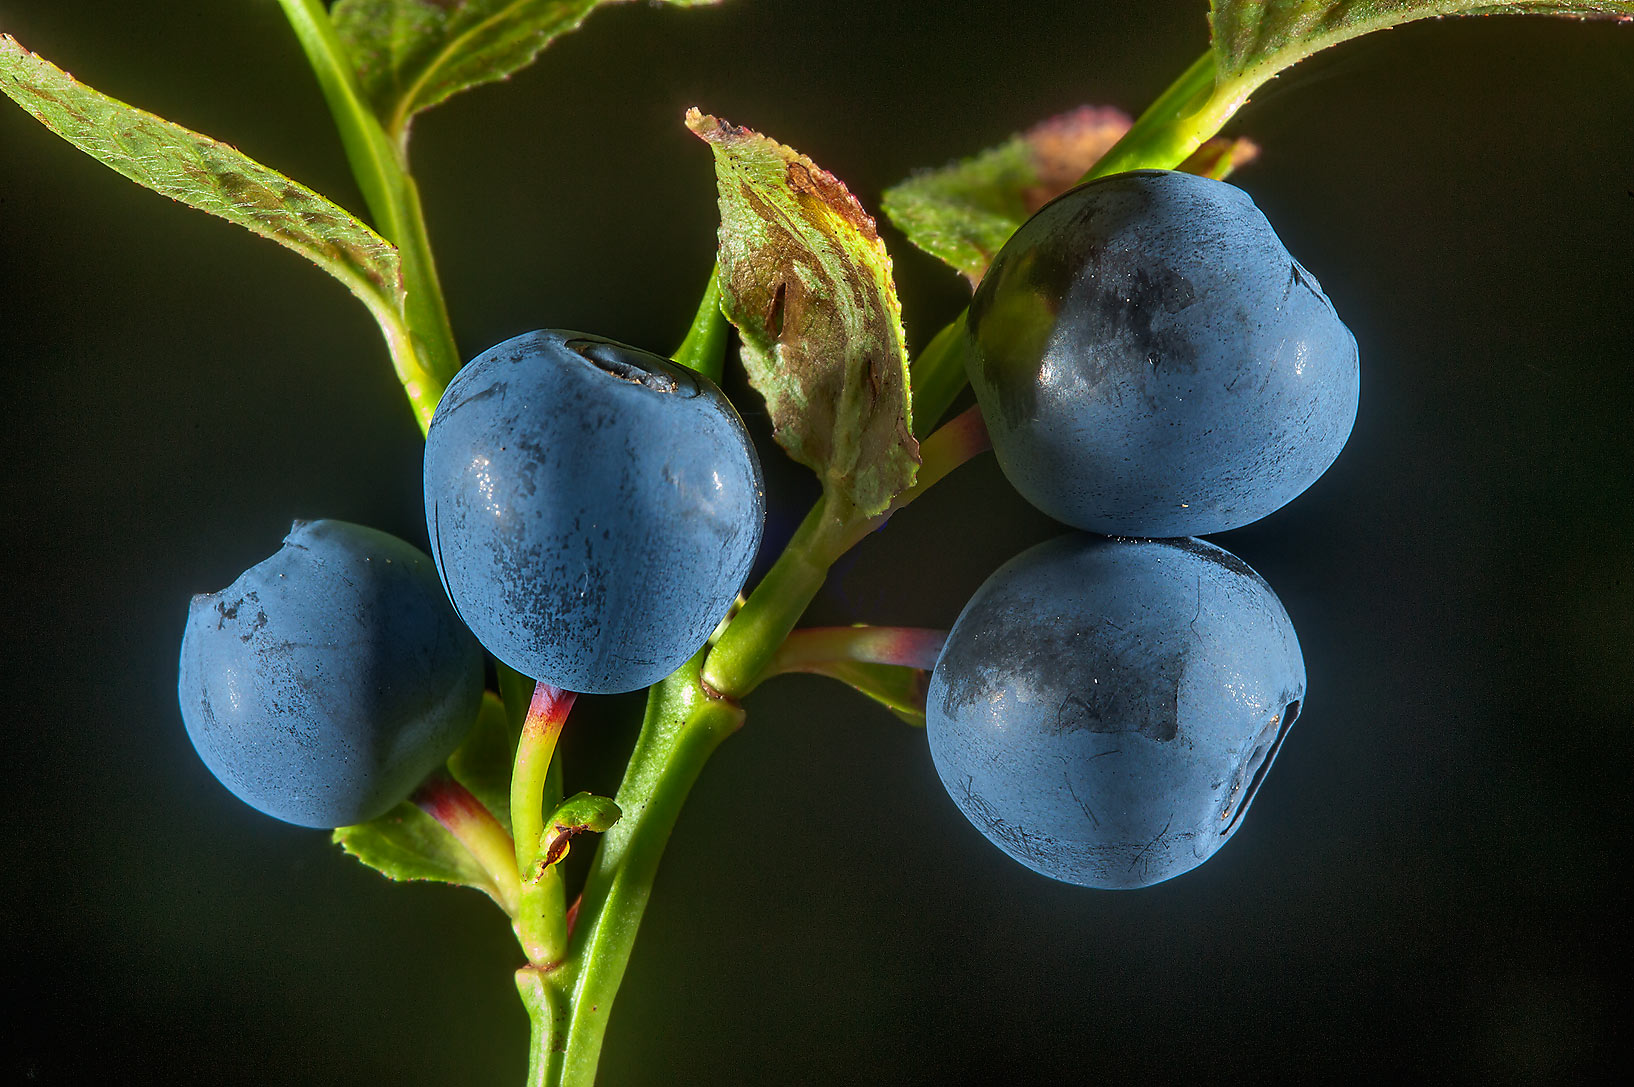 Fruits of blueberry (Chernika, Vaccinium...south from St.Petersburg, Russia